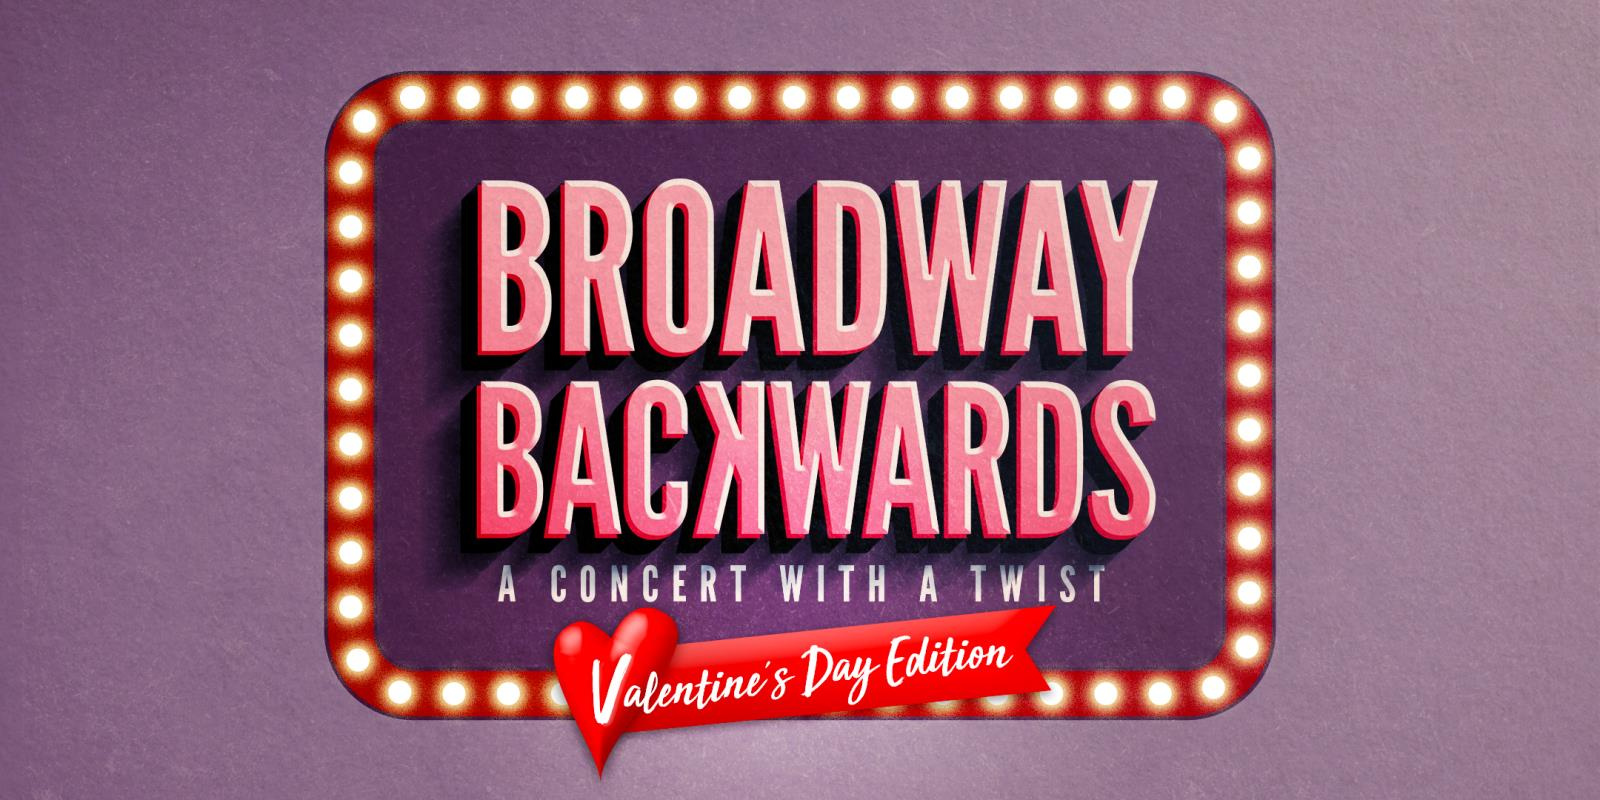 BroadwayBackwards_Event_Header.jpg